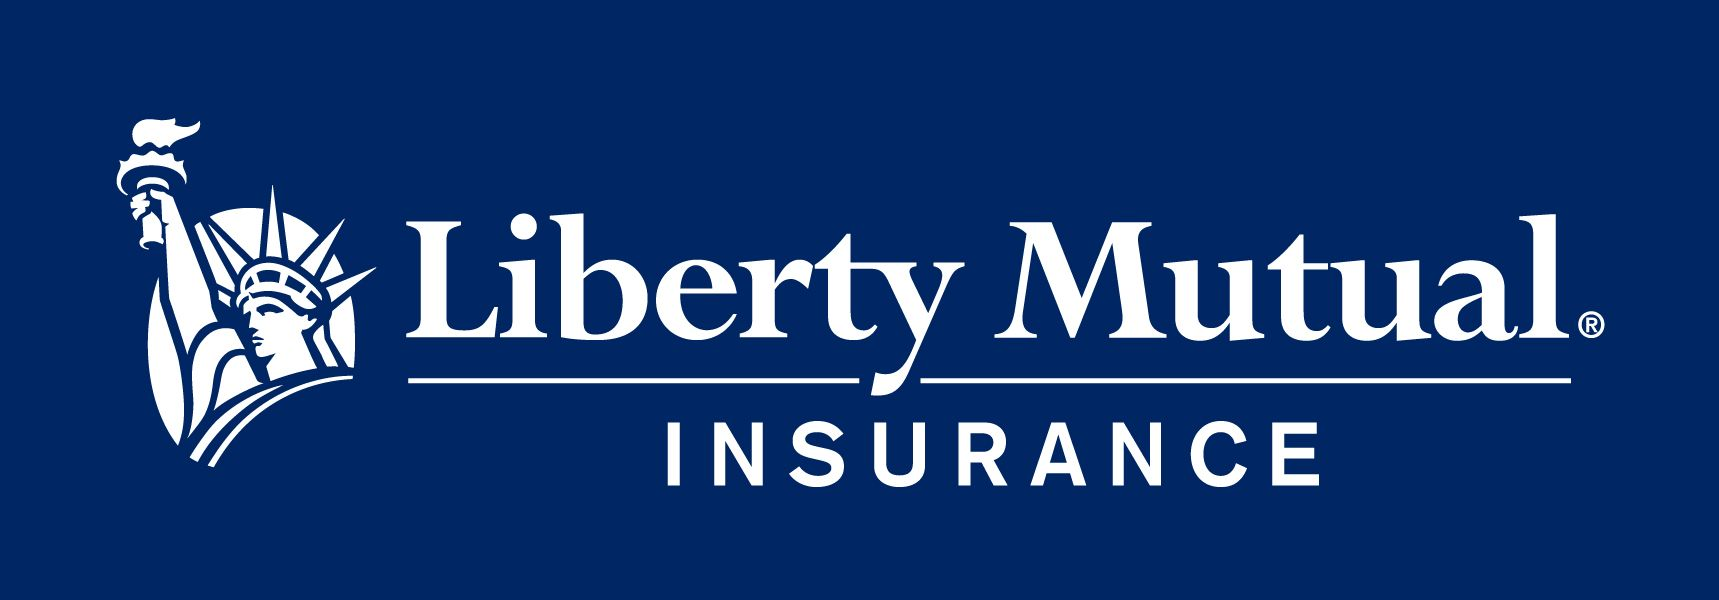 Liberty Mutual Quote Captivating Liberty Mutual Logo  Brandedlogos  Pinterest  Liberty Mutual